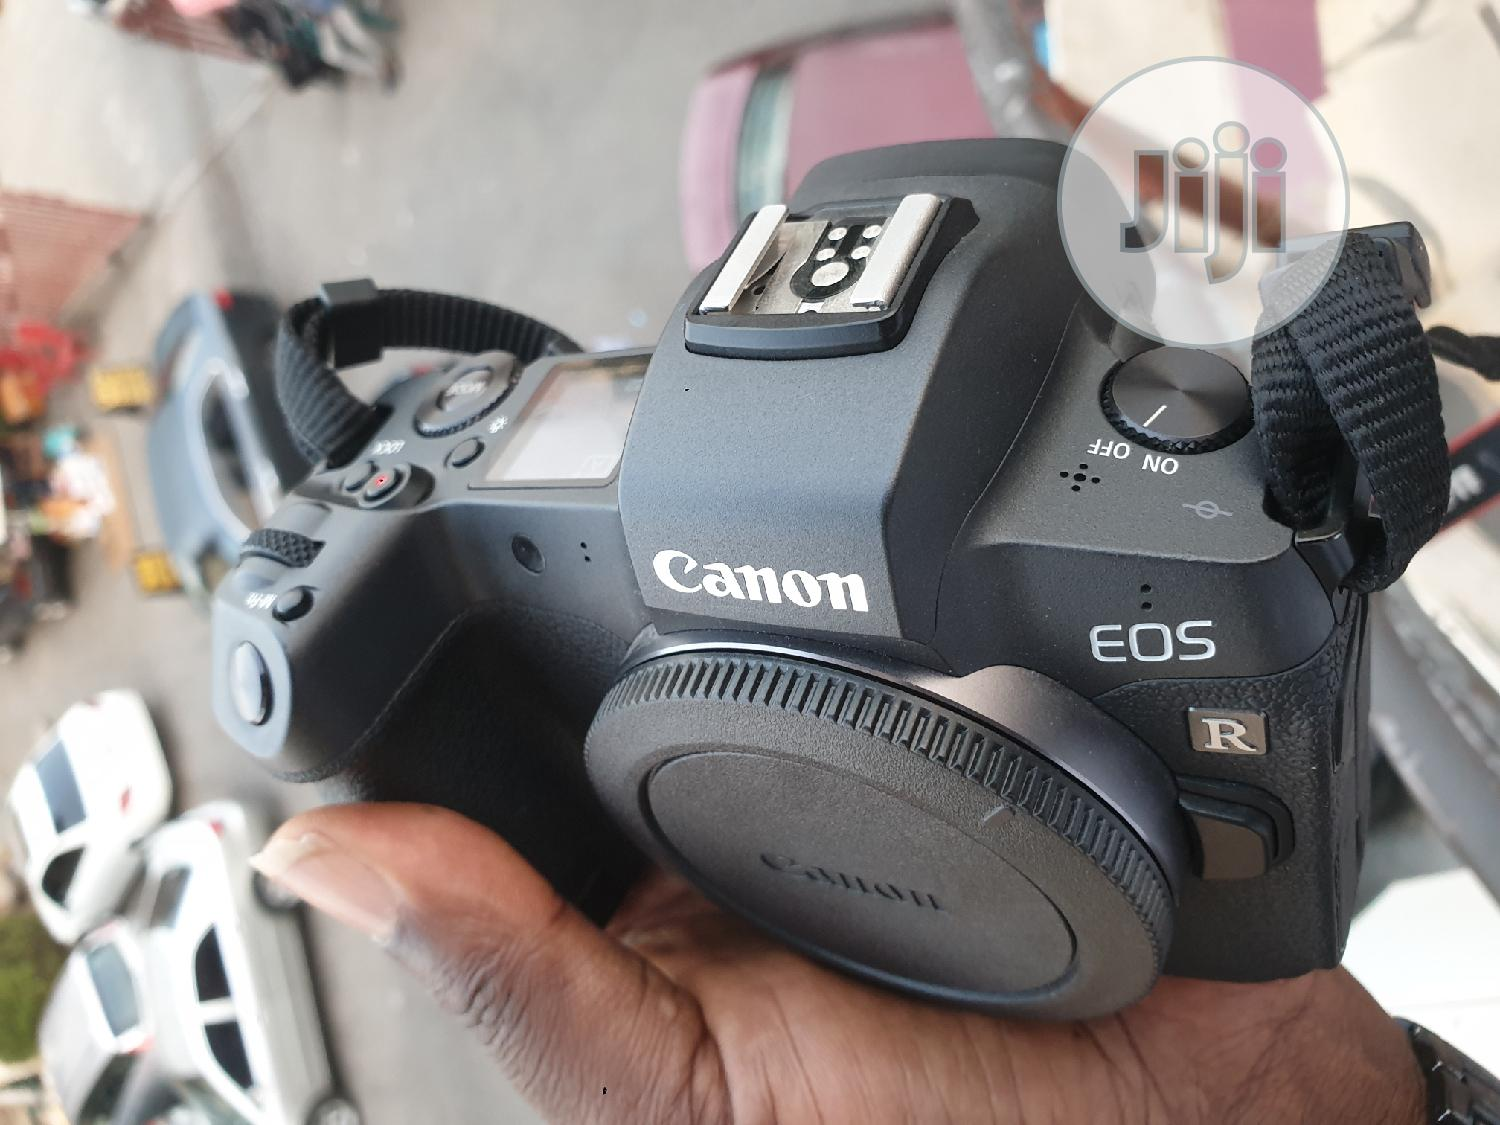 Canon EOS R 4K Professional Digital Camera Wit 24-105mm Lens | Photo & Video Cameras for sale in Wuse 2, Abuja (FCT) State, Nigeria